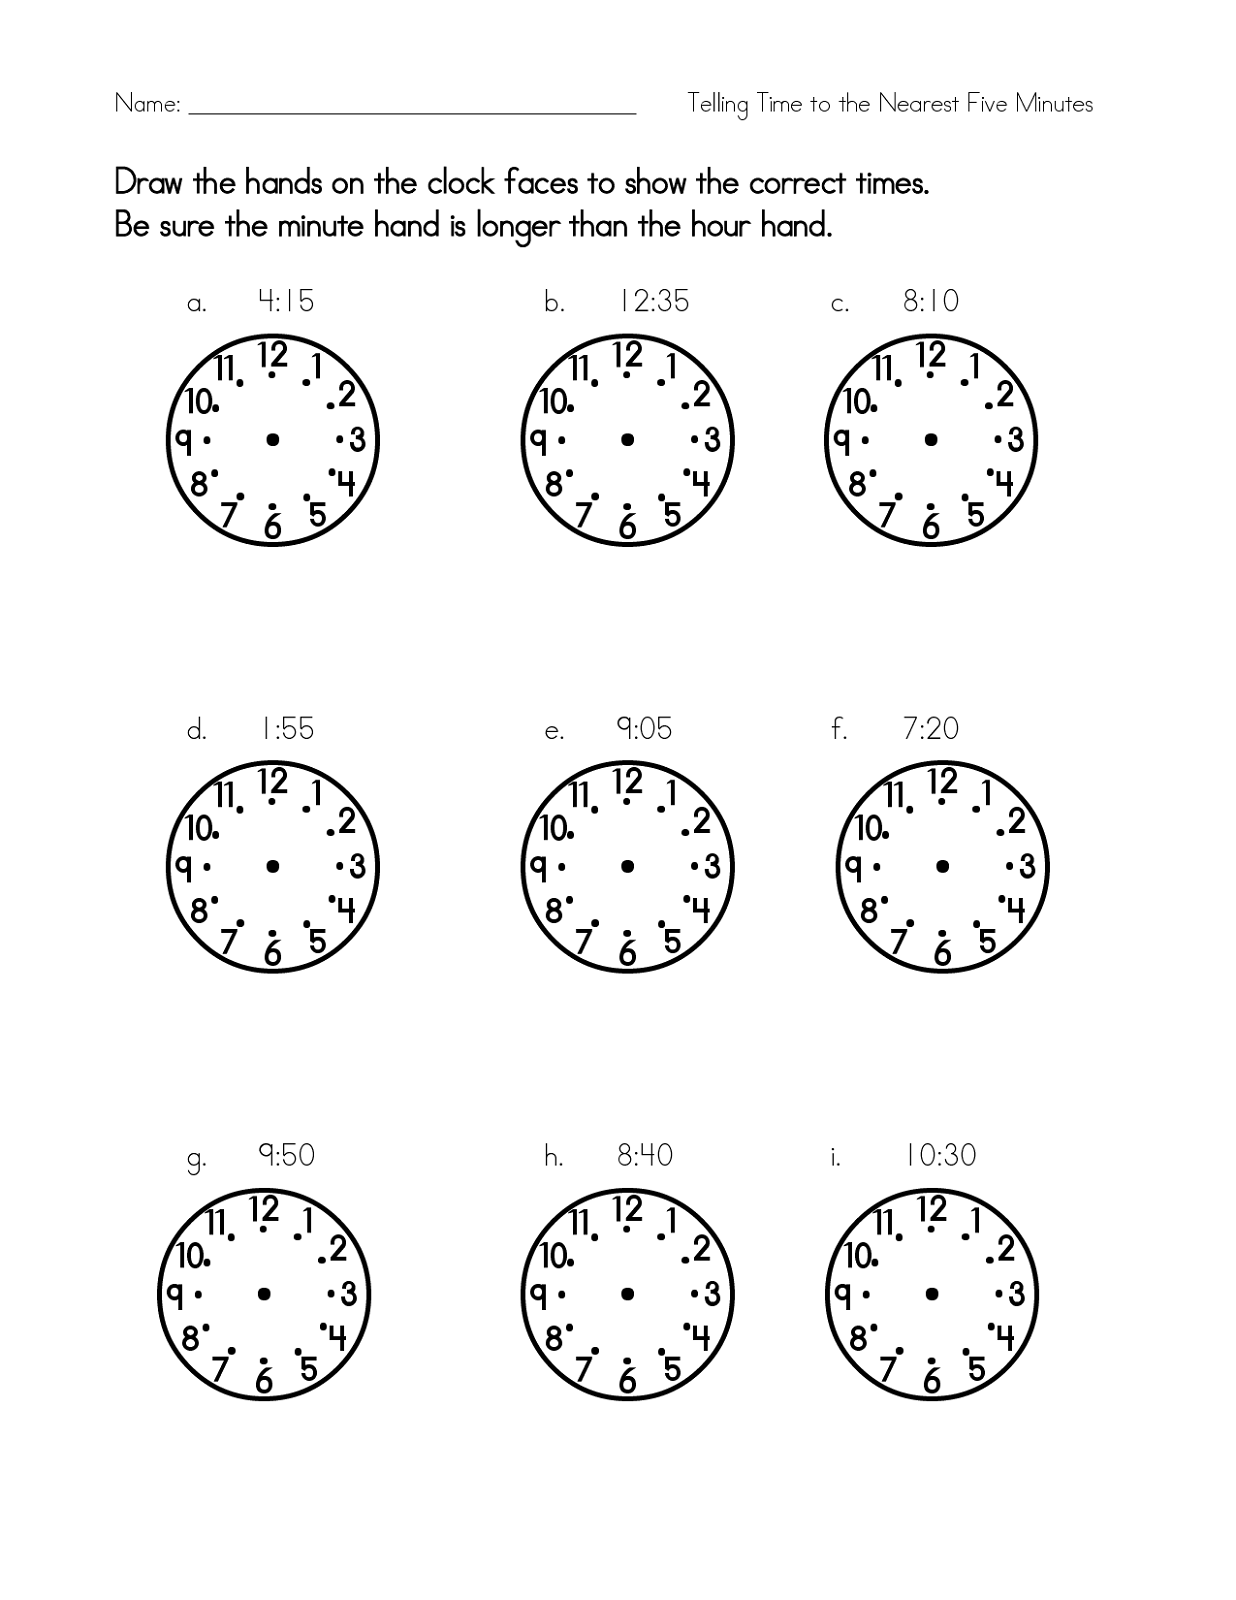 blank clock face worksheet exercise